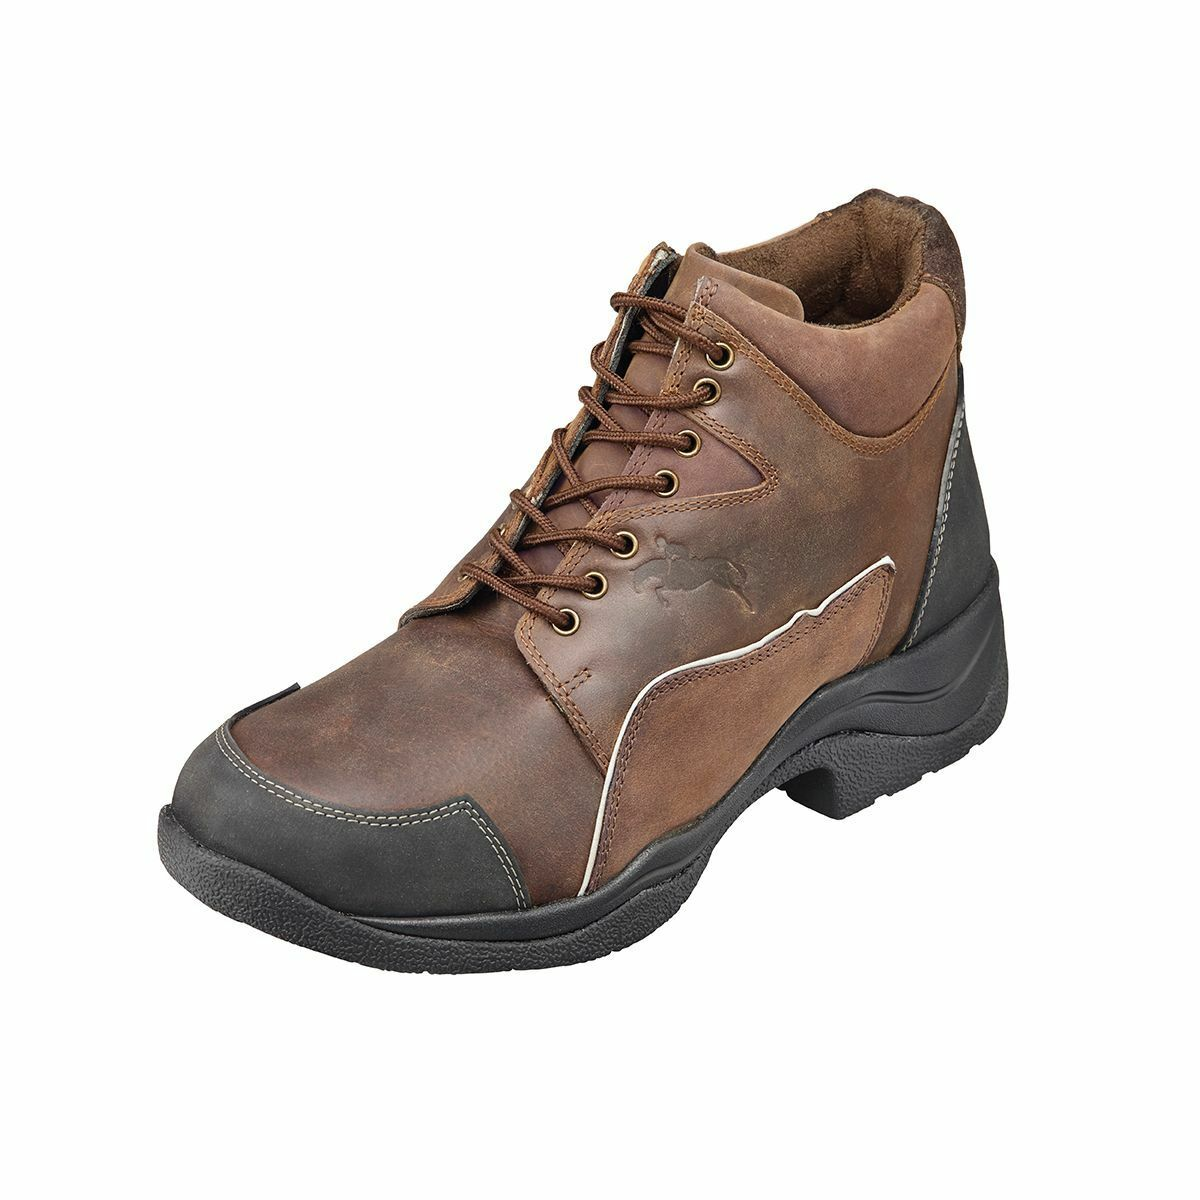 Harry Hall Outland Riding Equestrian Country Walking Endurance  Boots waterproof  we offer various famous brand